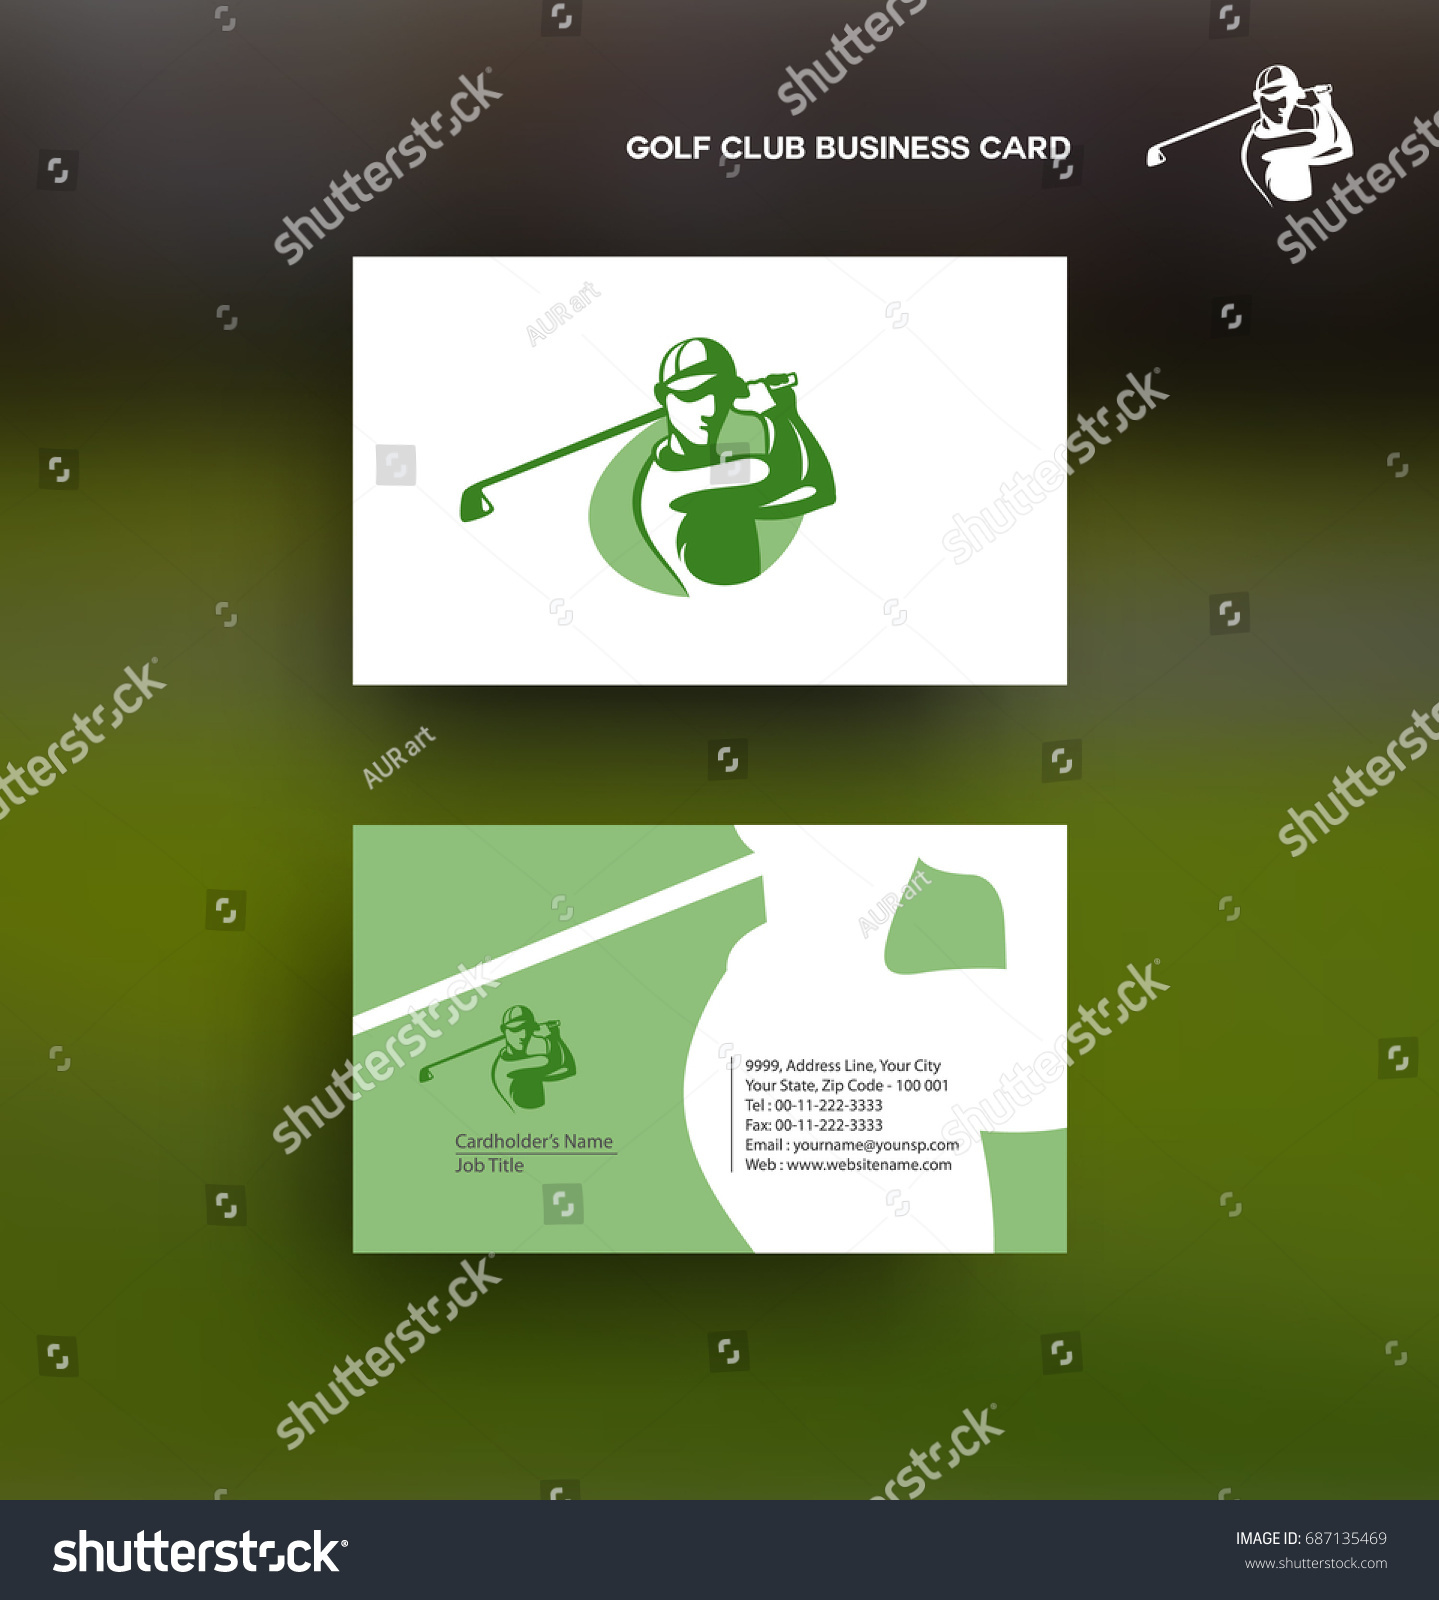 Golf Icon Business Card Information Contact Stock Vector 687135469 ...